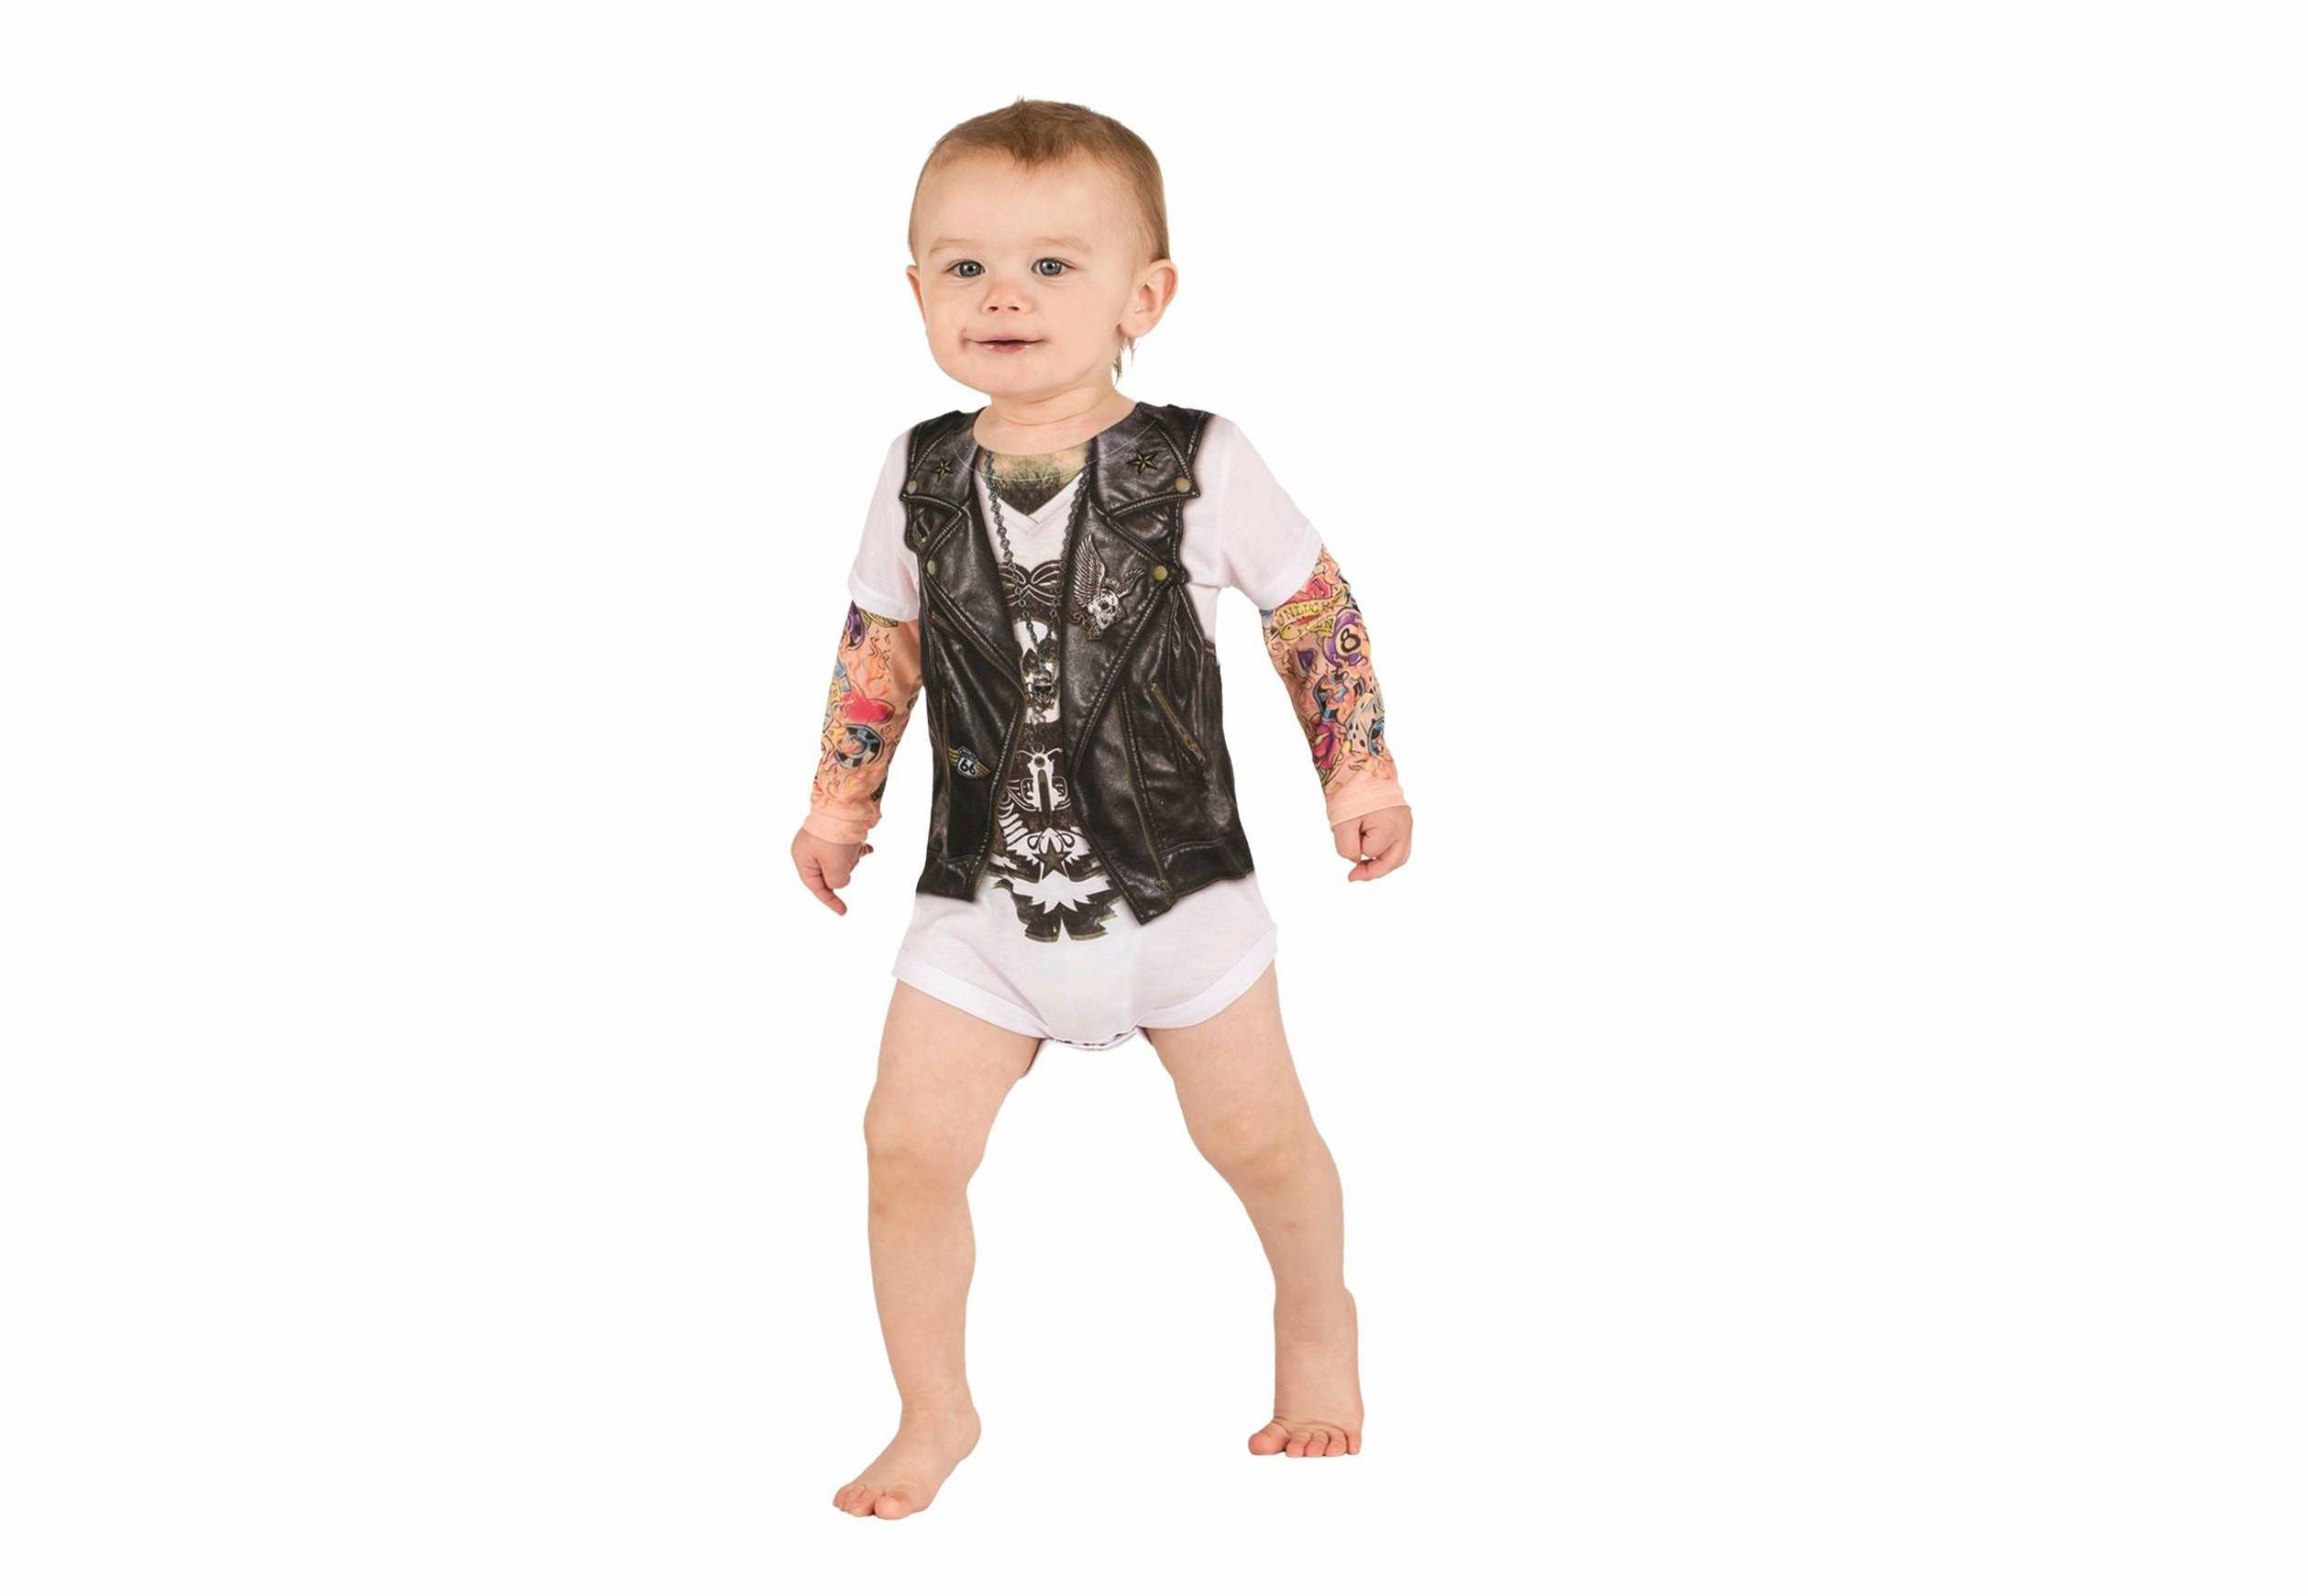 Baby Halloween Costumes At Target.20 Totally Bizarre Baby Halloween Costumes